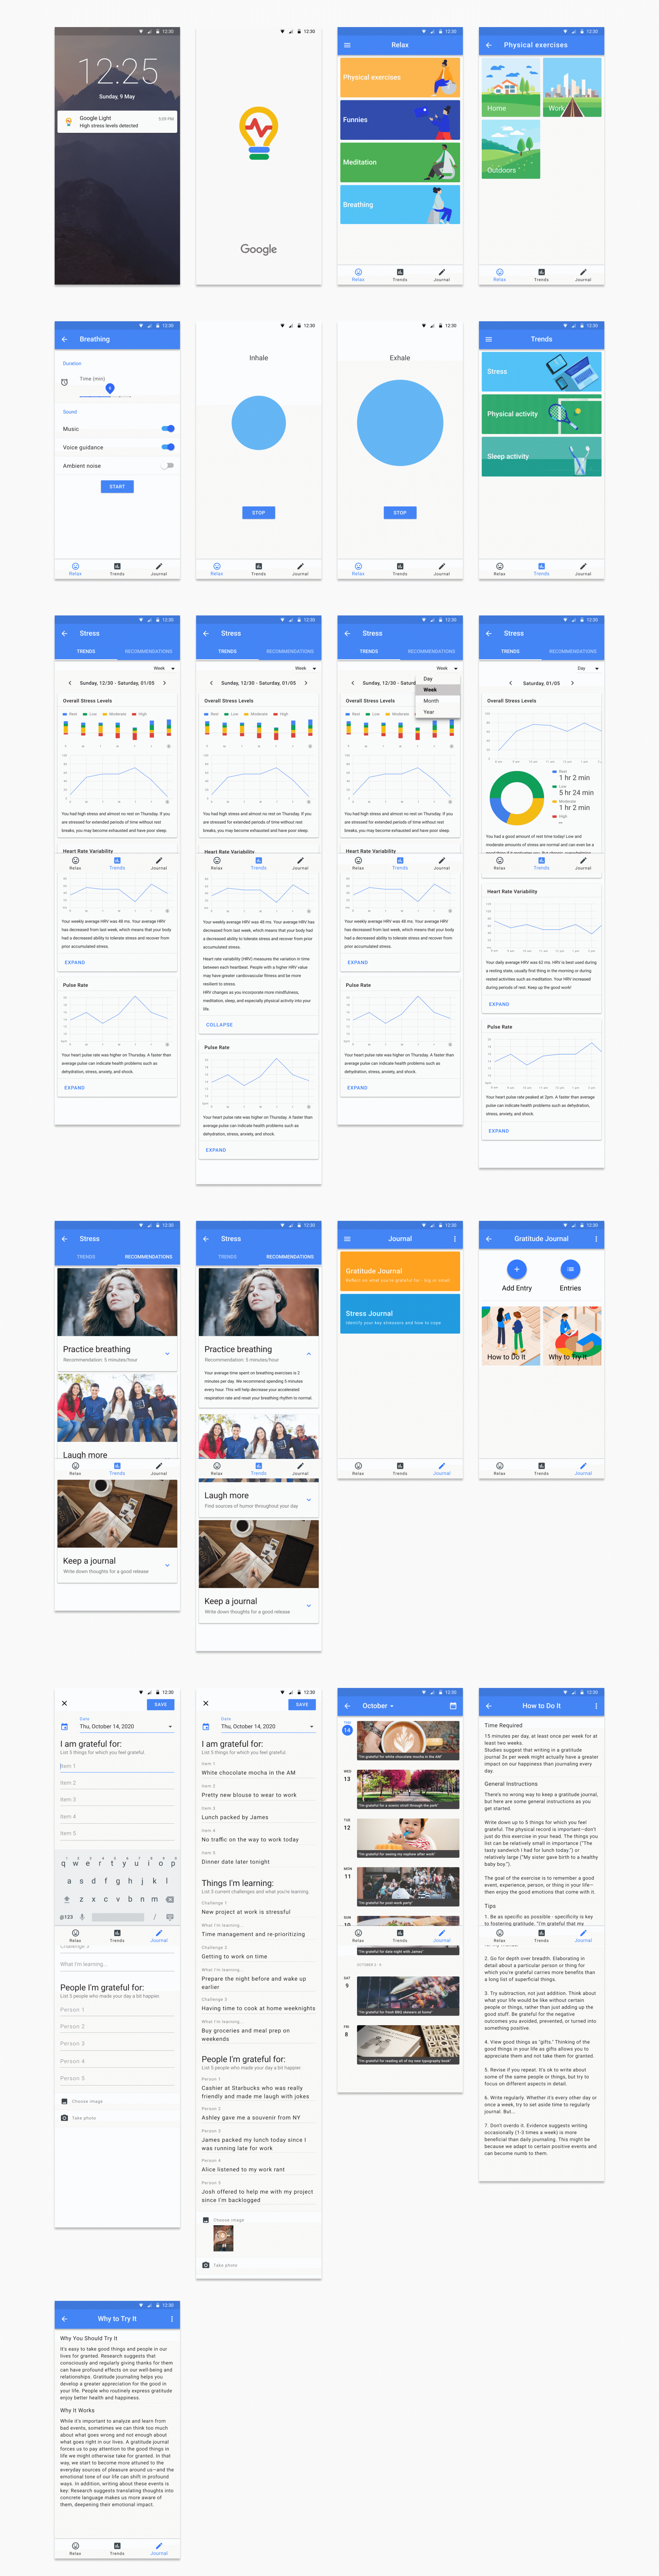 hi-fo wireframes for case study.png